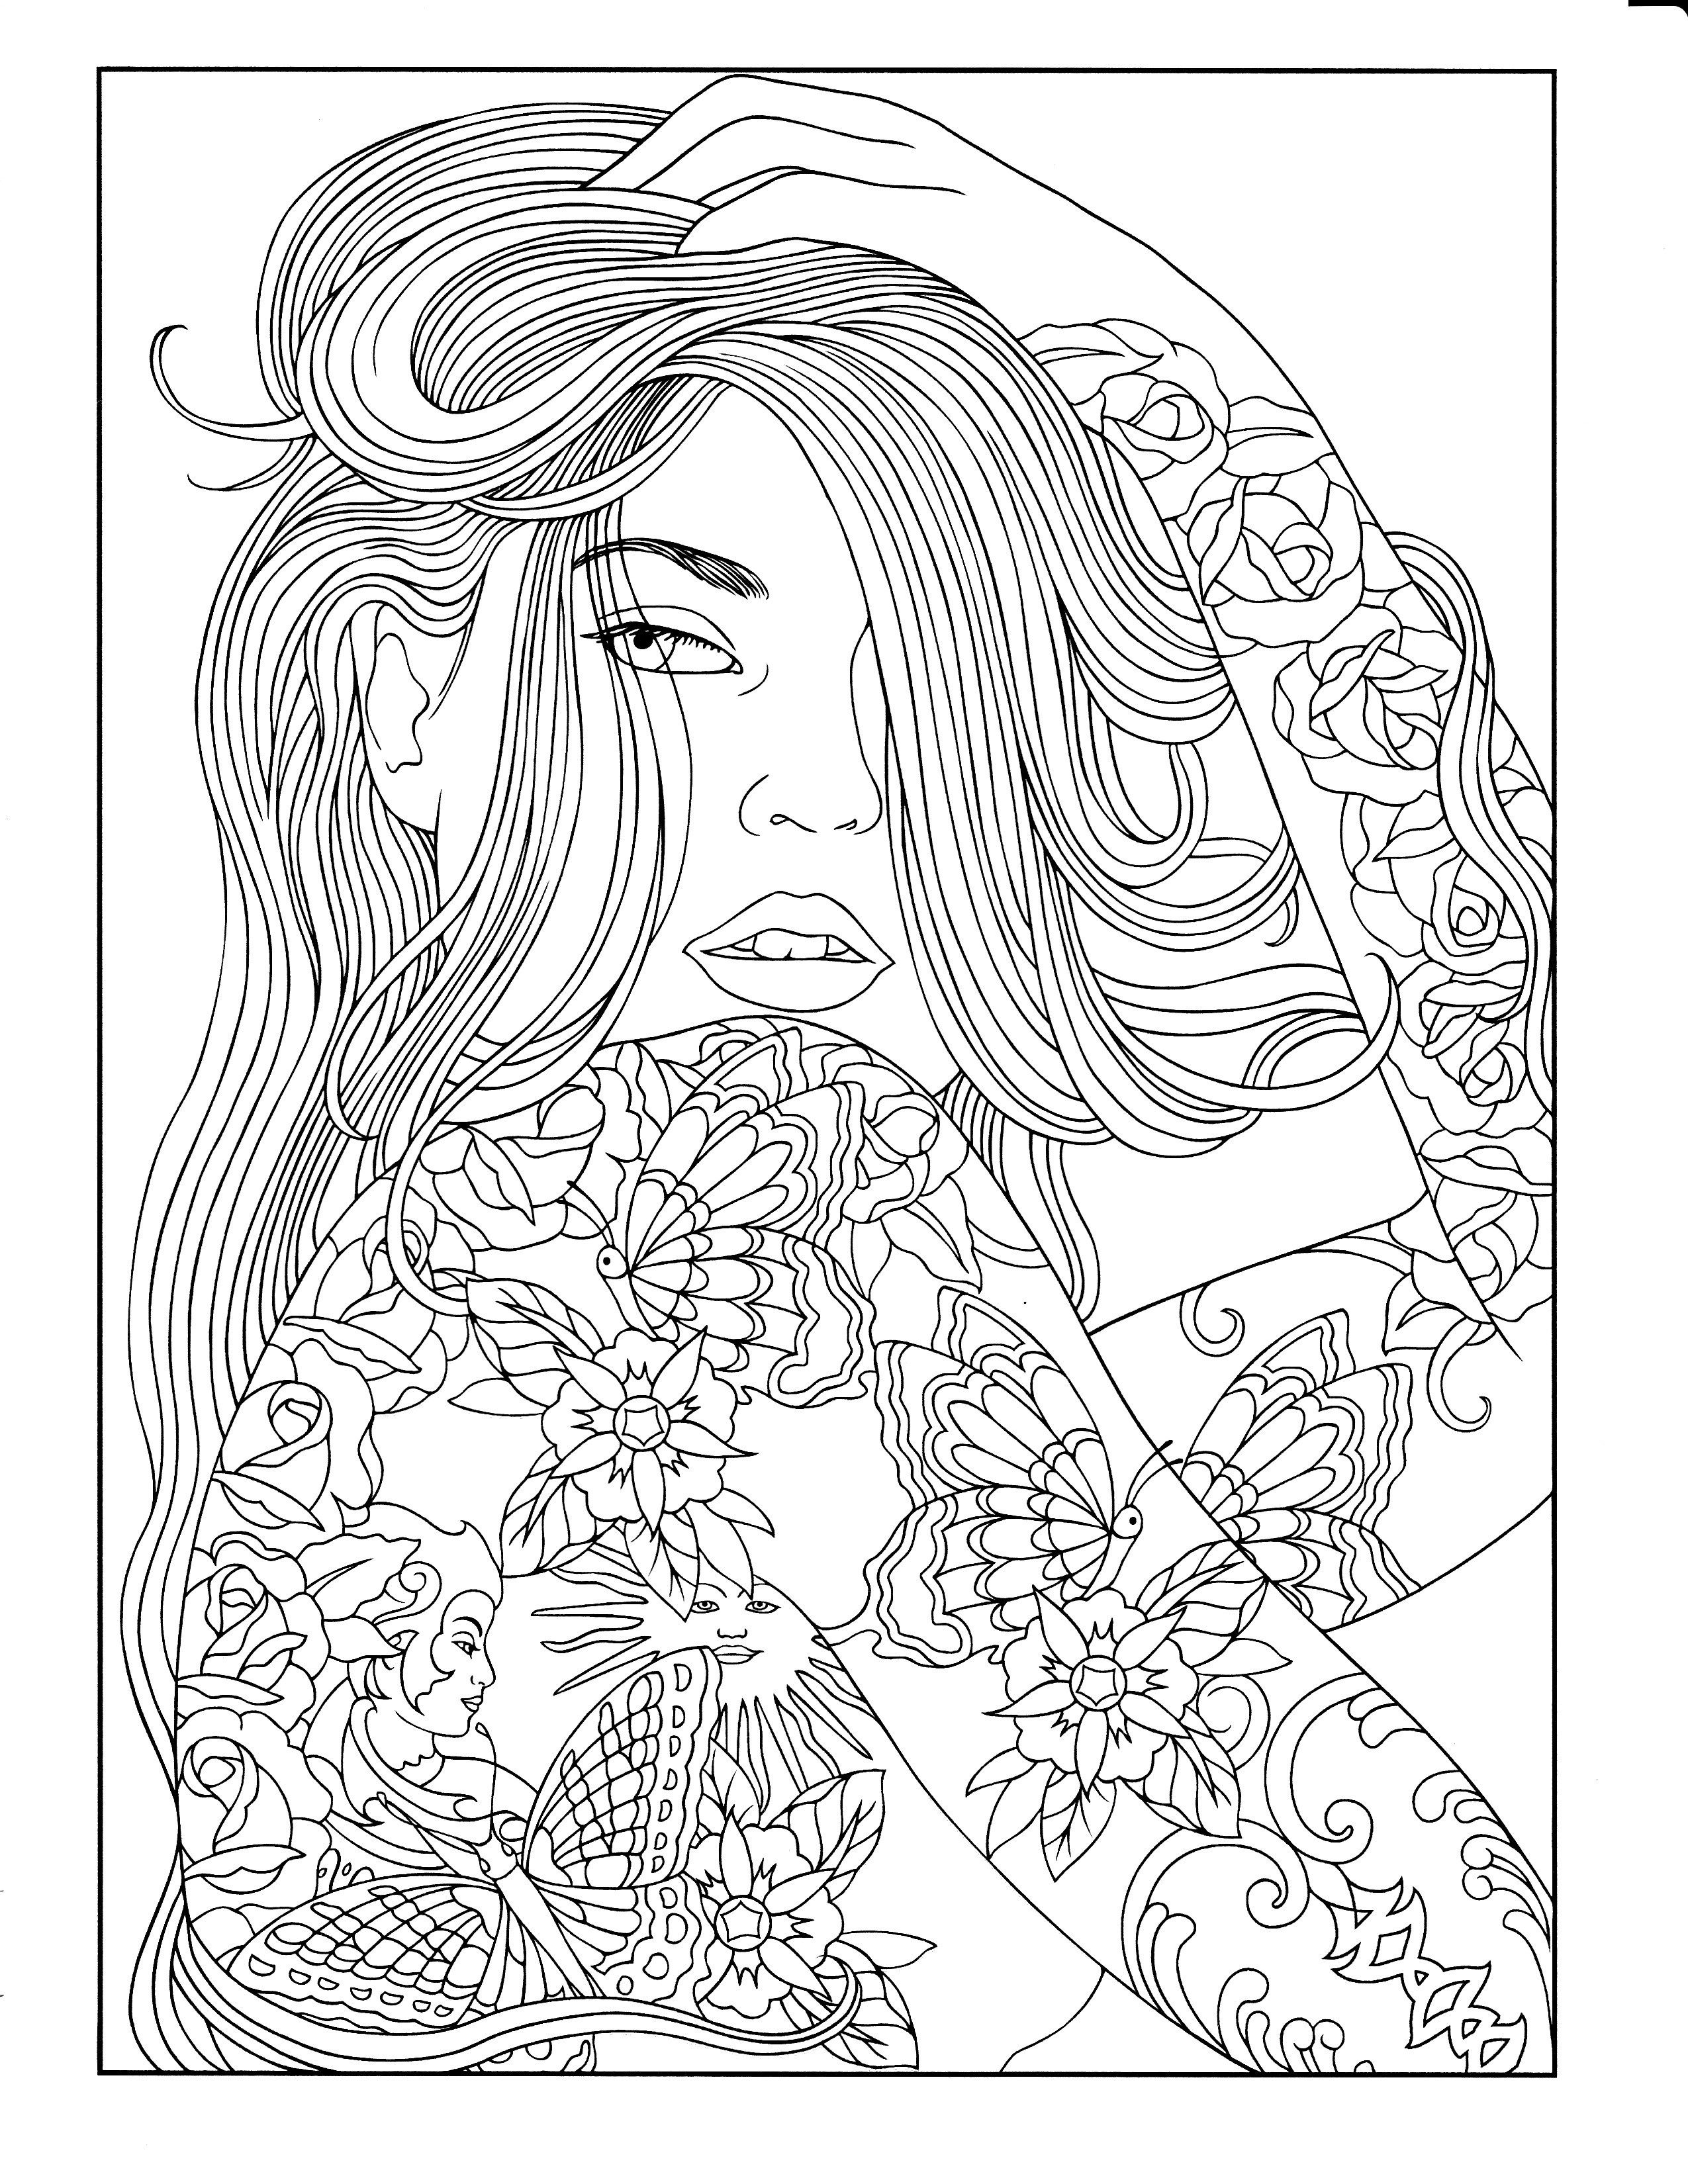 Printable Coloring Page … | Coloring pages | People coloring ...